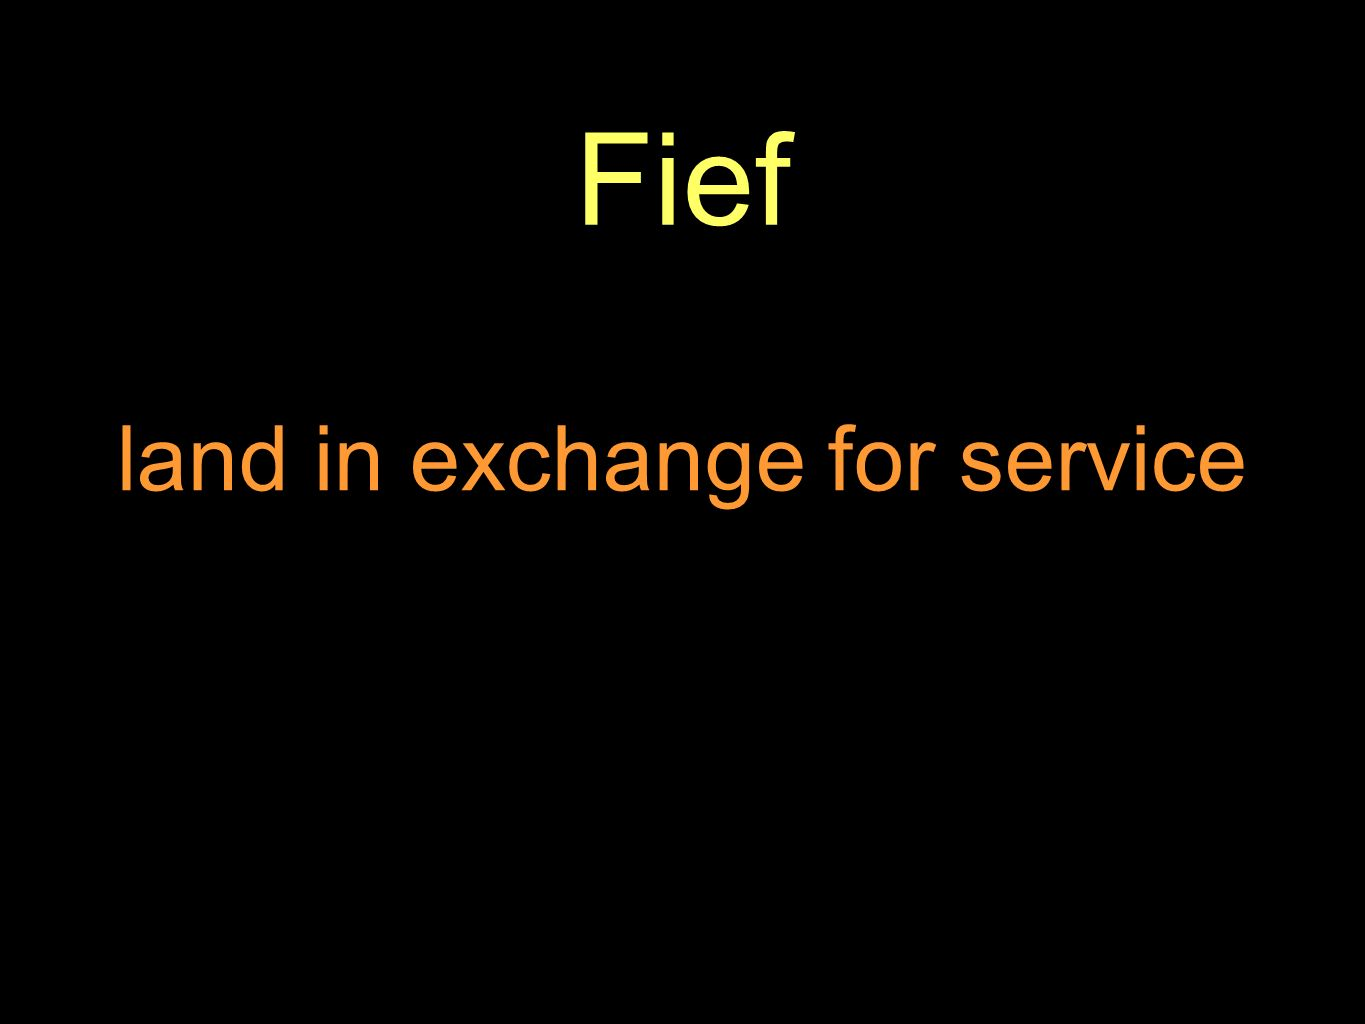 Fief land in exchange for service